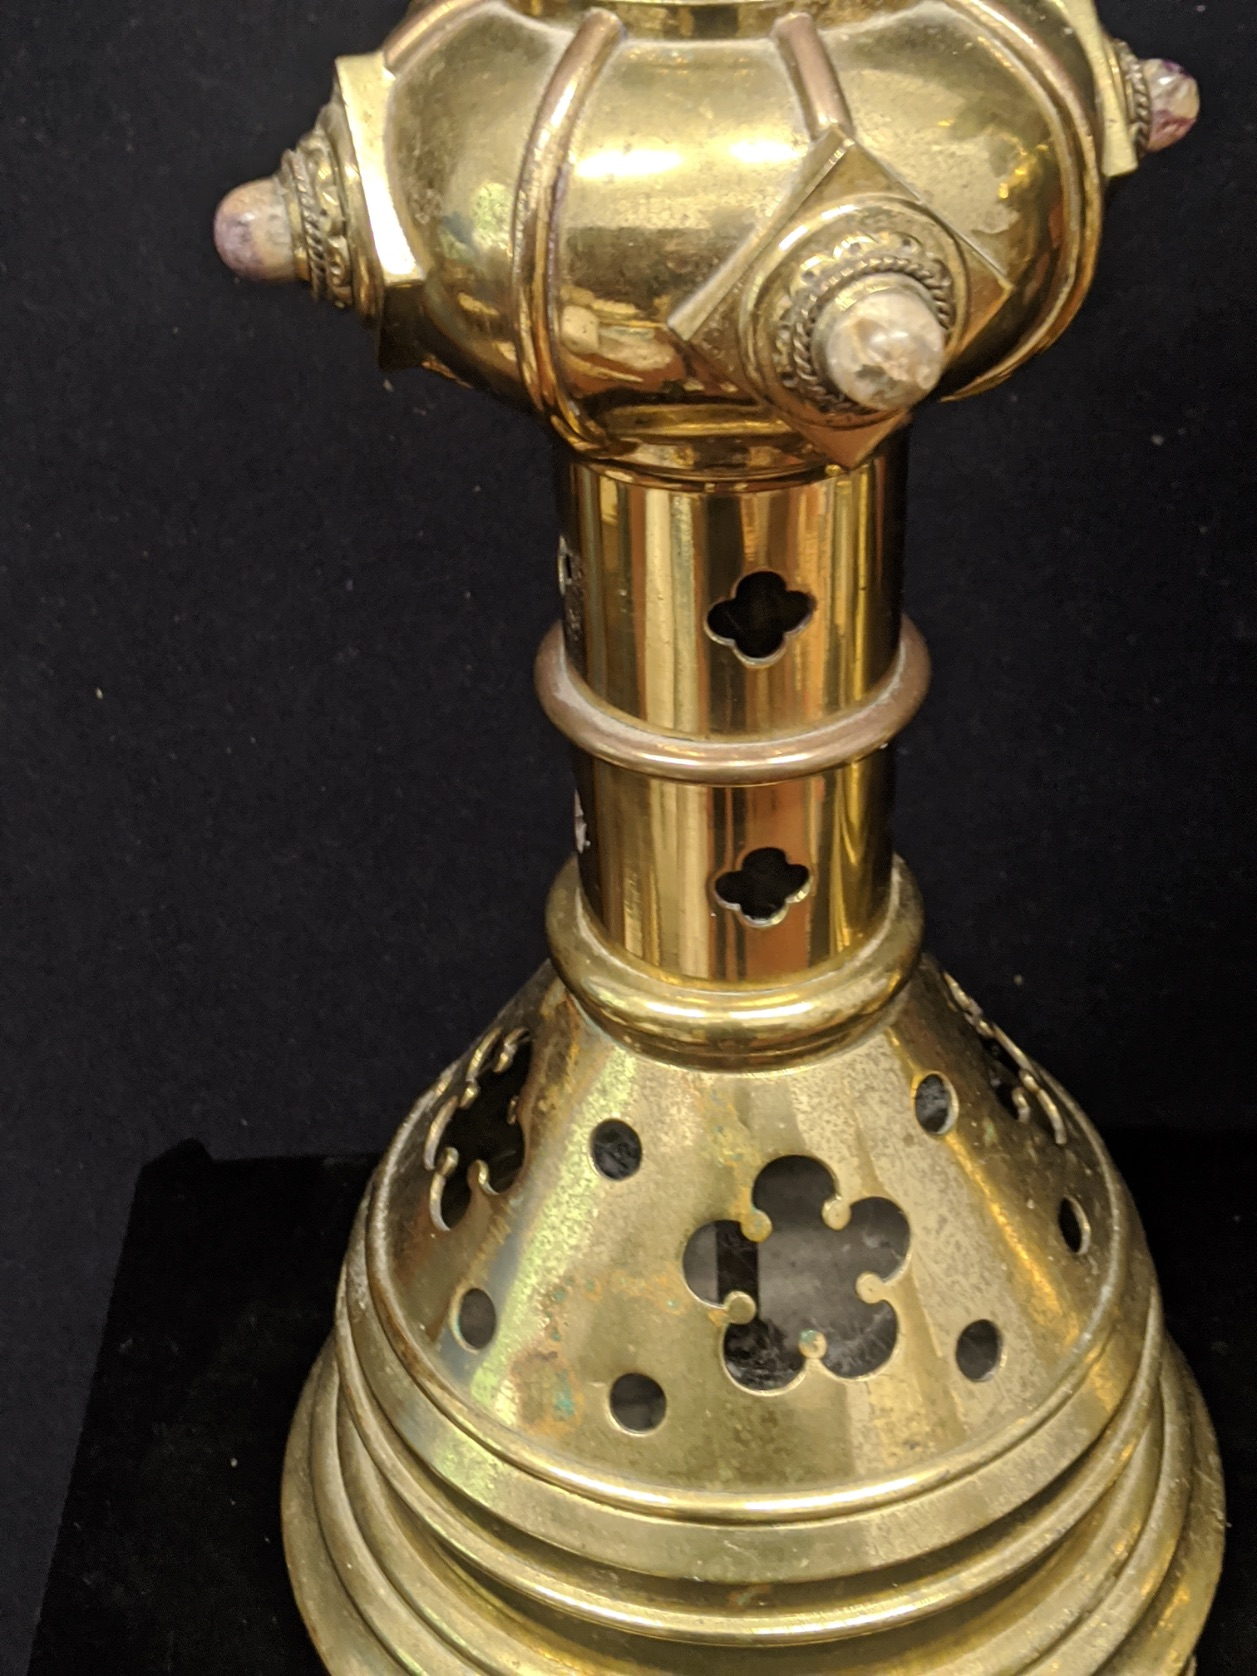 A pair of Gothic Revival brass candlesticks, mounted with stones, circa late 19th century, H.61cm - Image 2 of 4